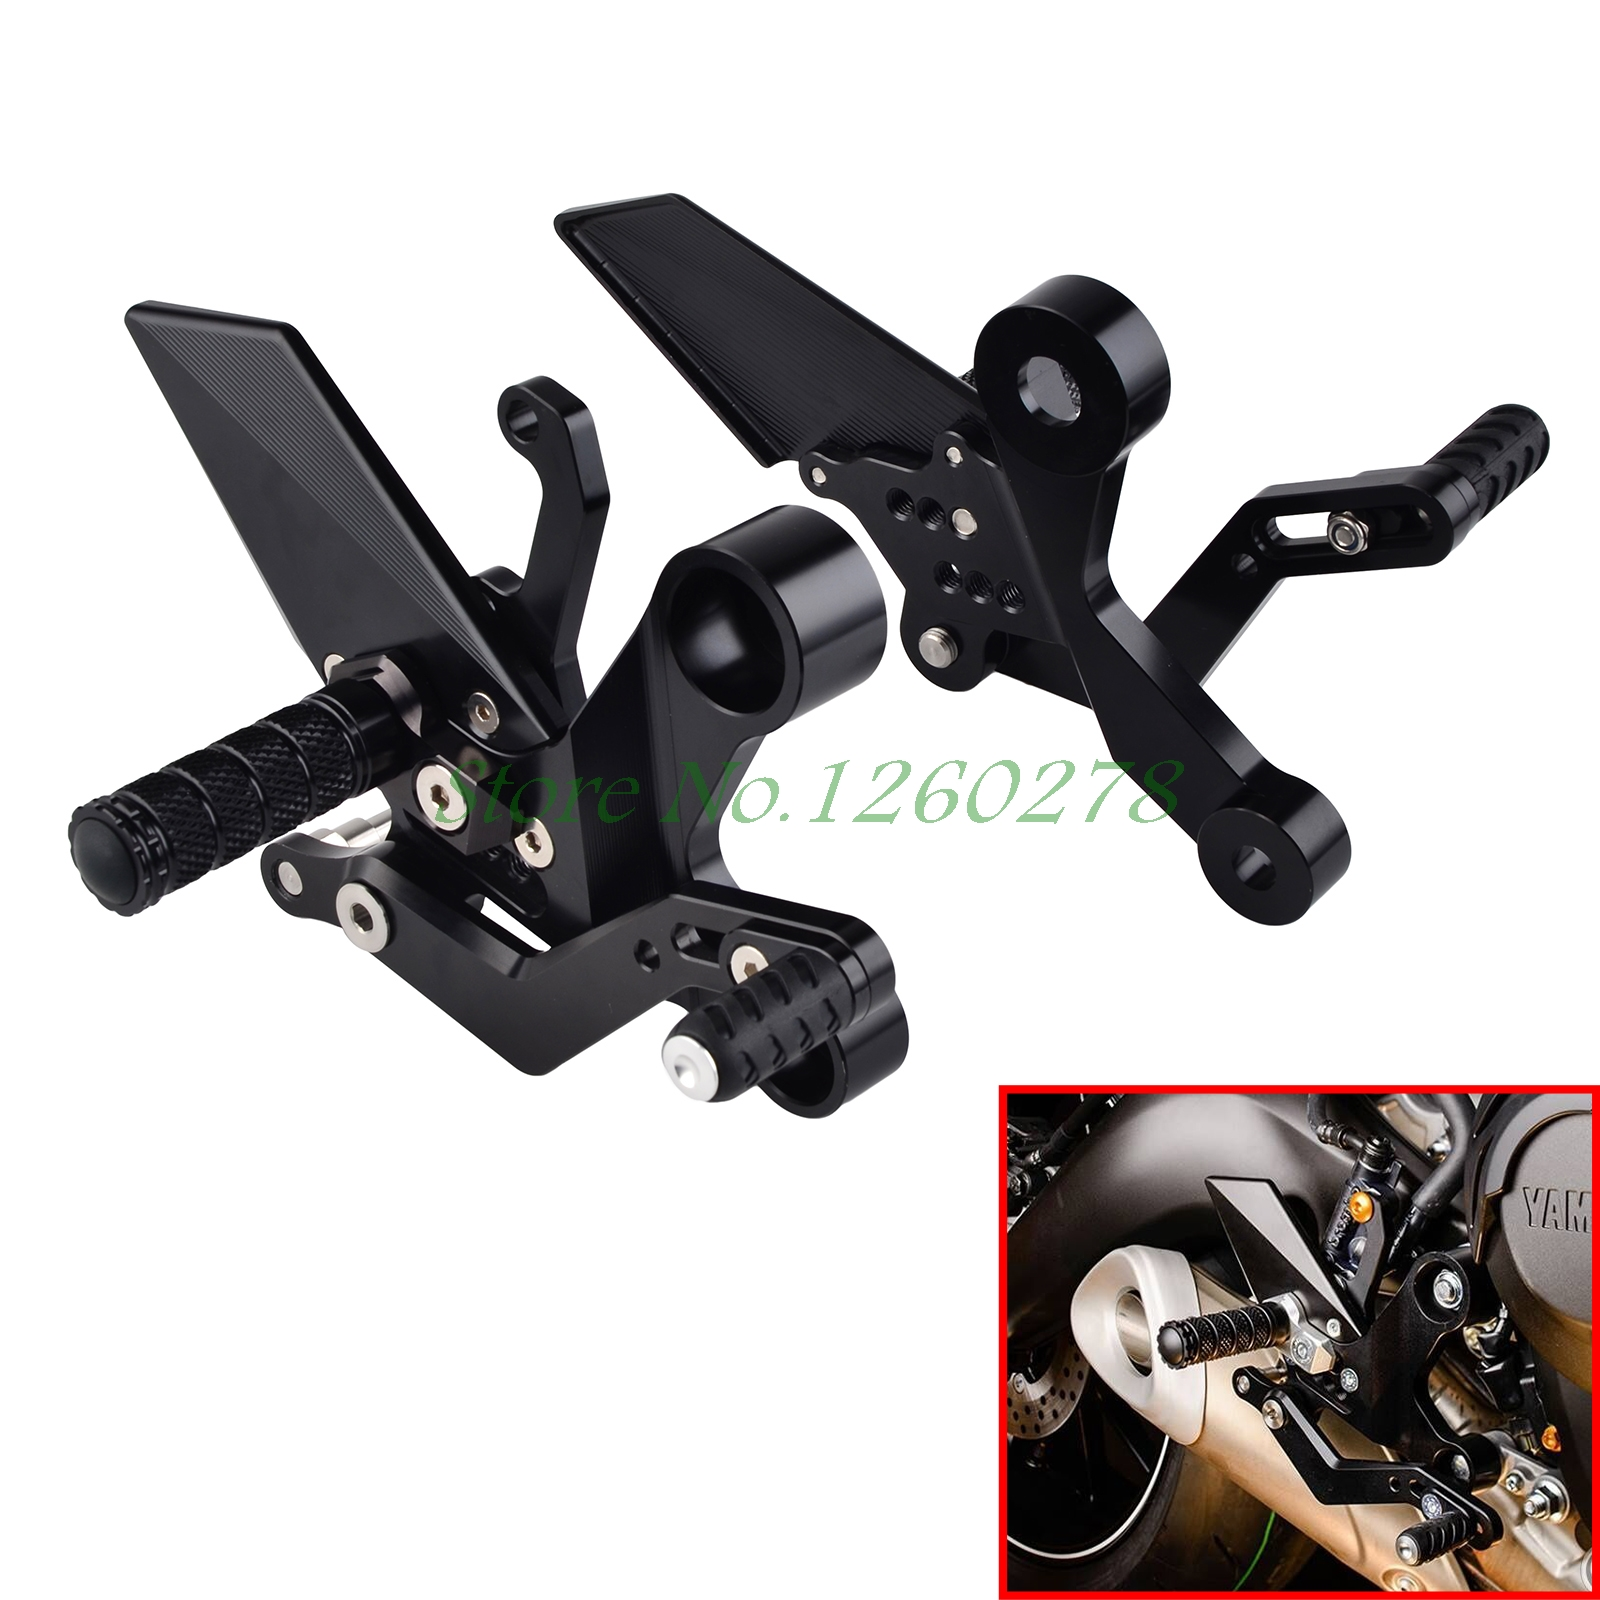 New CNC Billet Racing Adjustable Foldable Rearset Foot Pegs Rear Sets For Yamaha MT09 MT 09 2013 2014 2015 цена